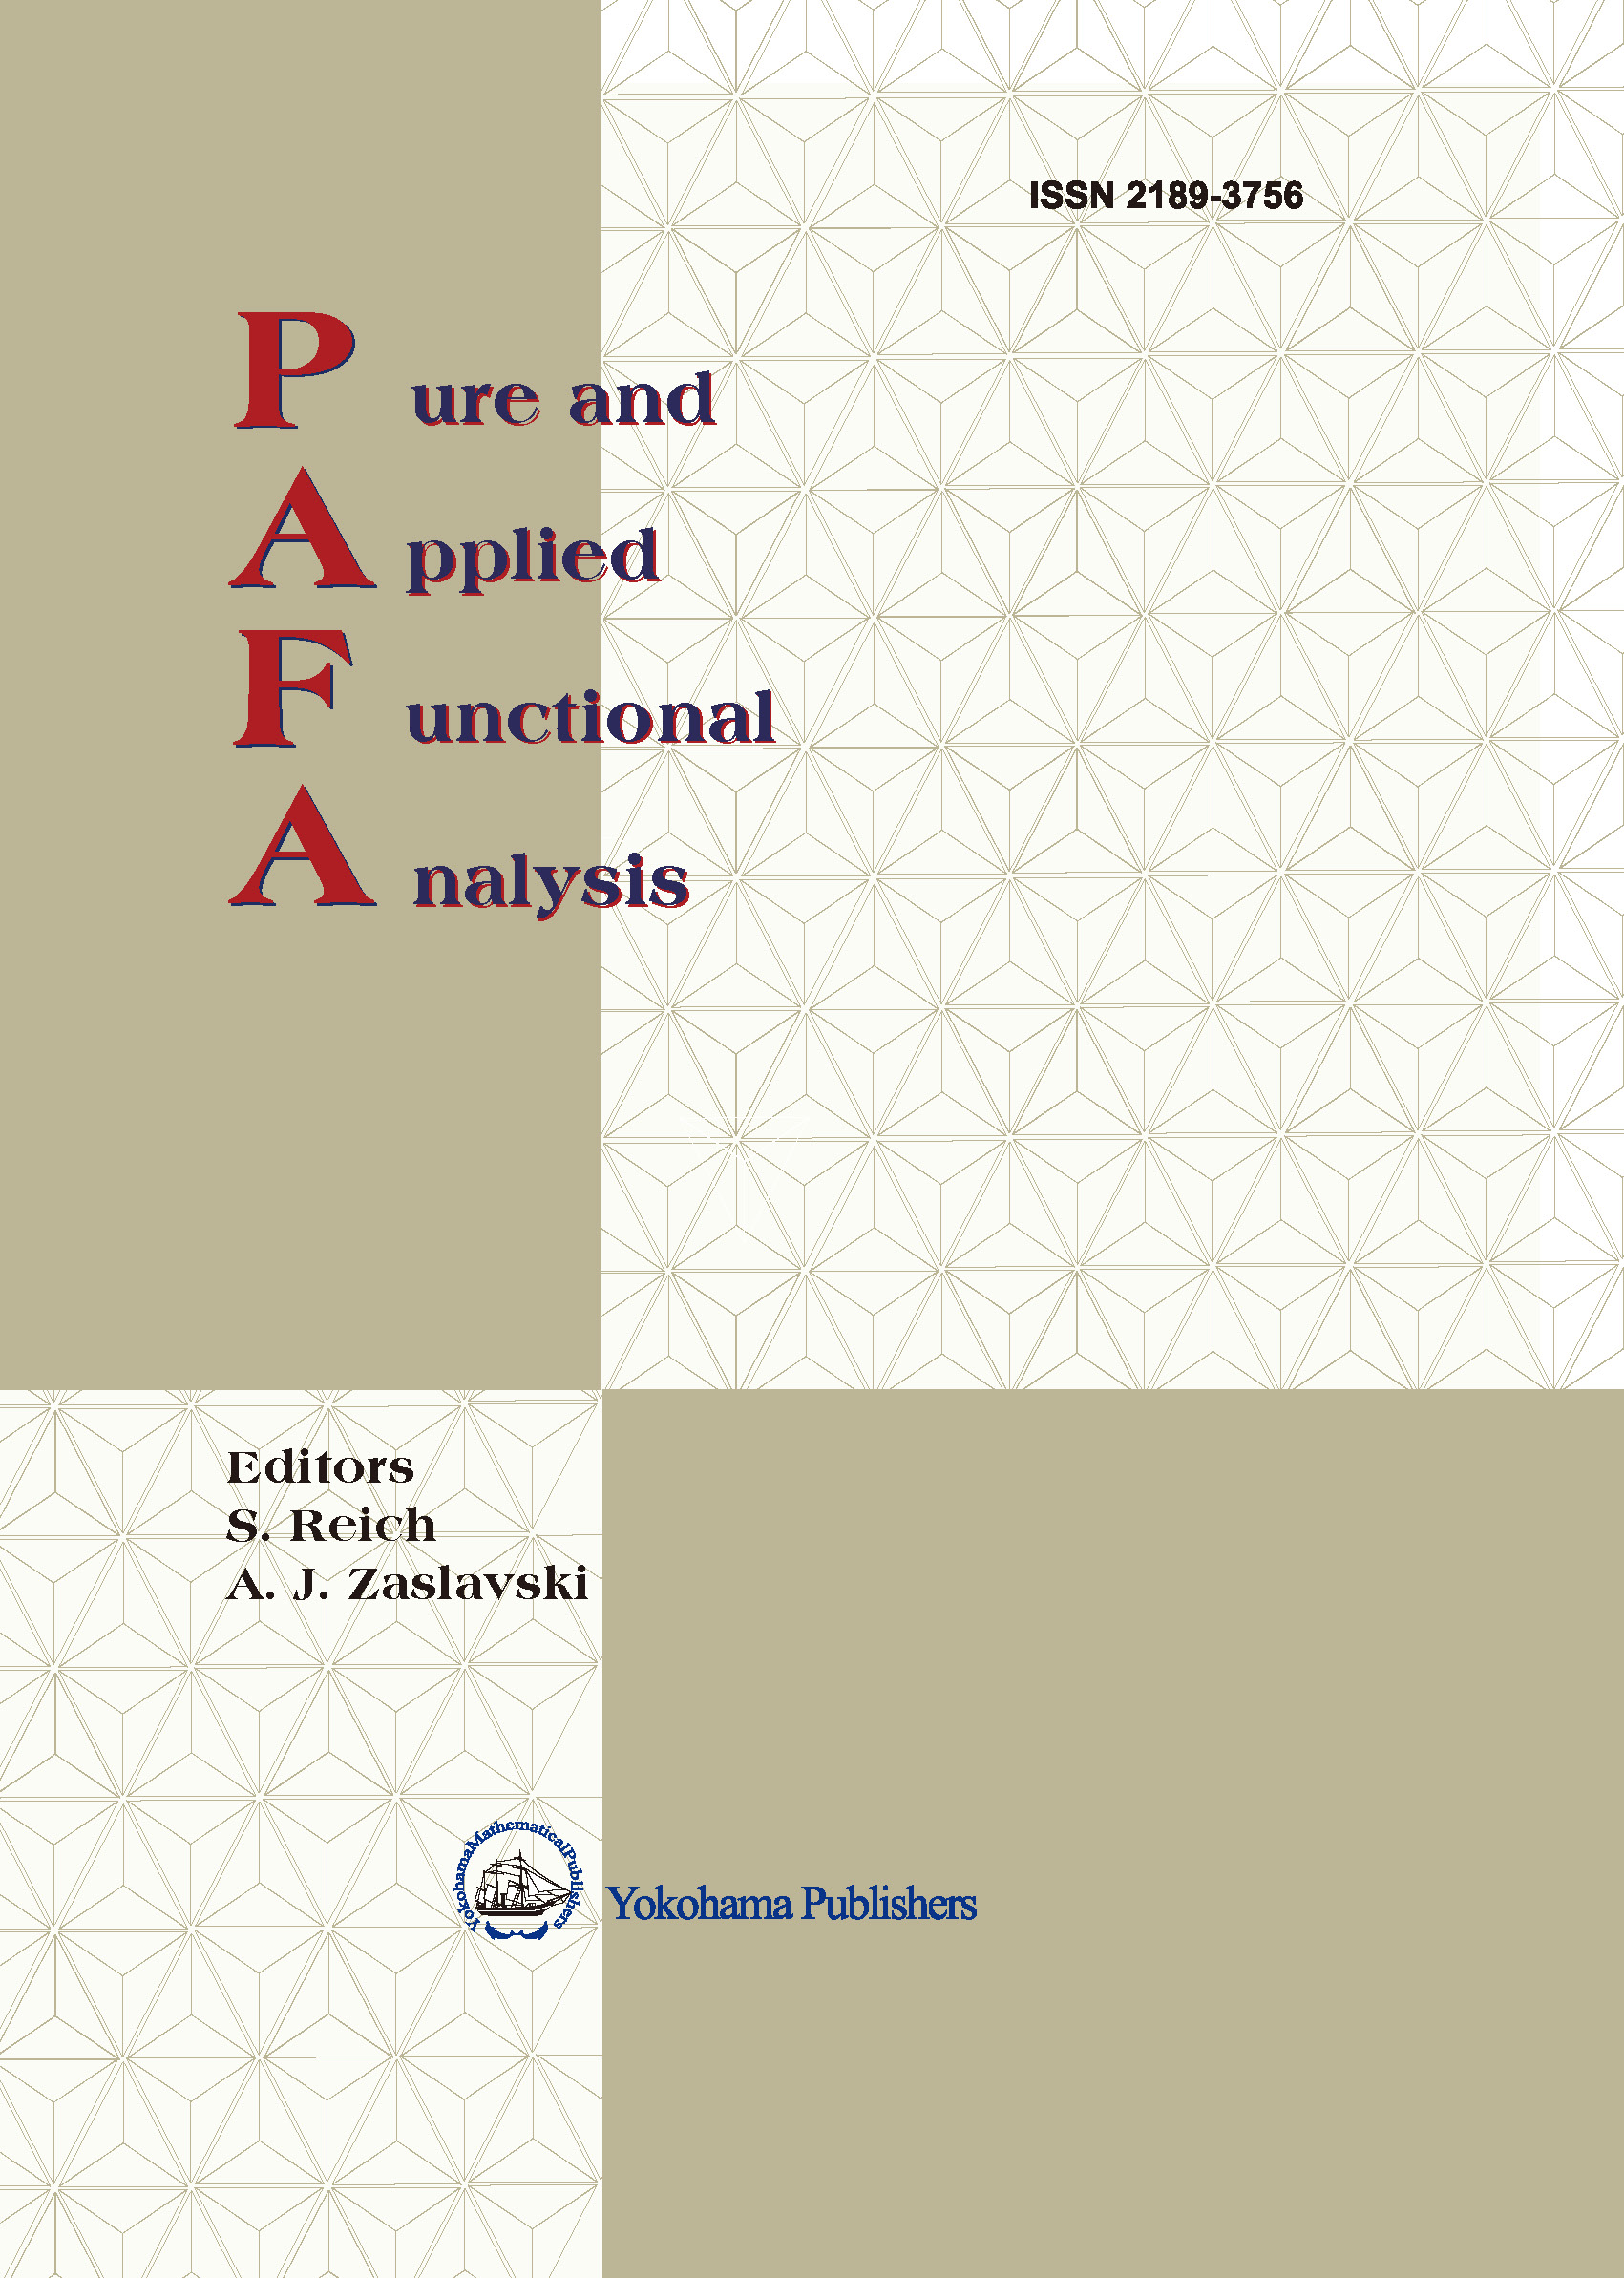 Pure and Applied Functional Analysis